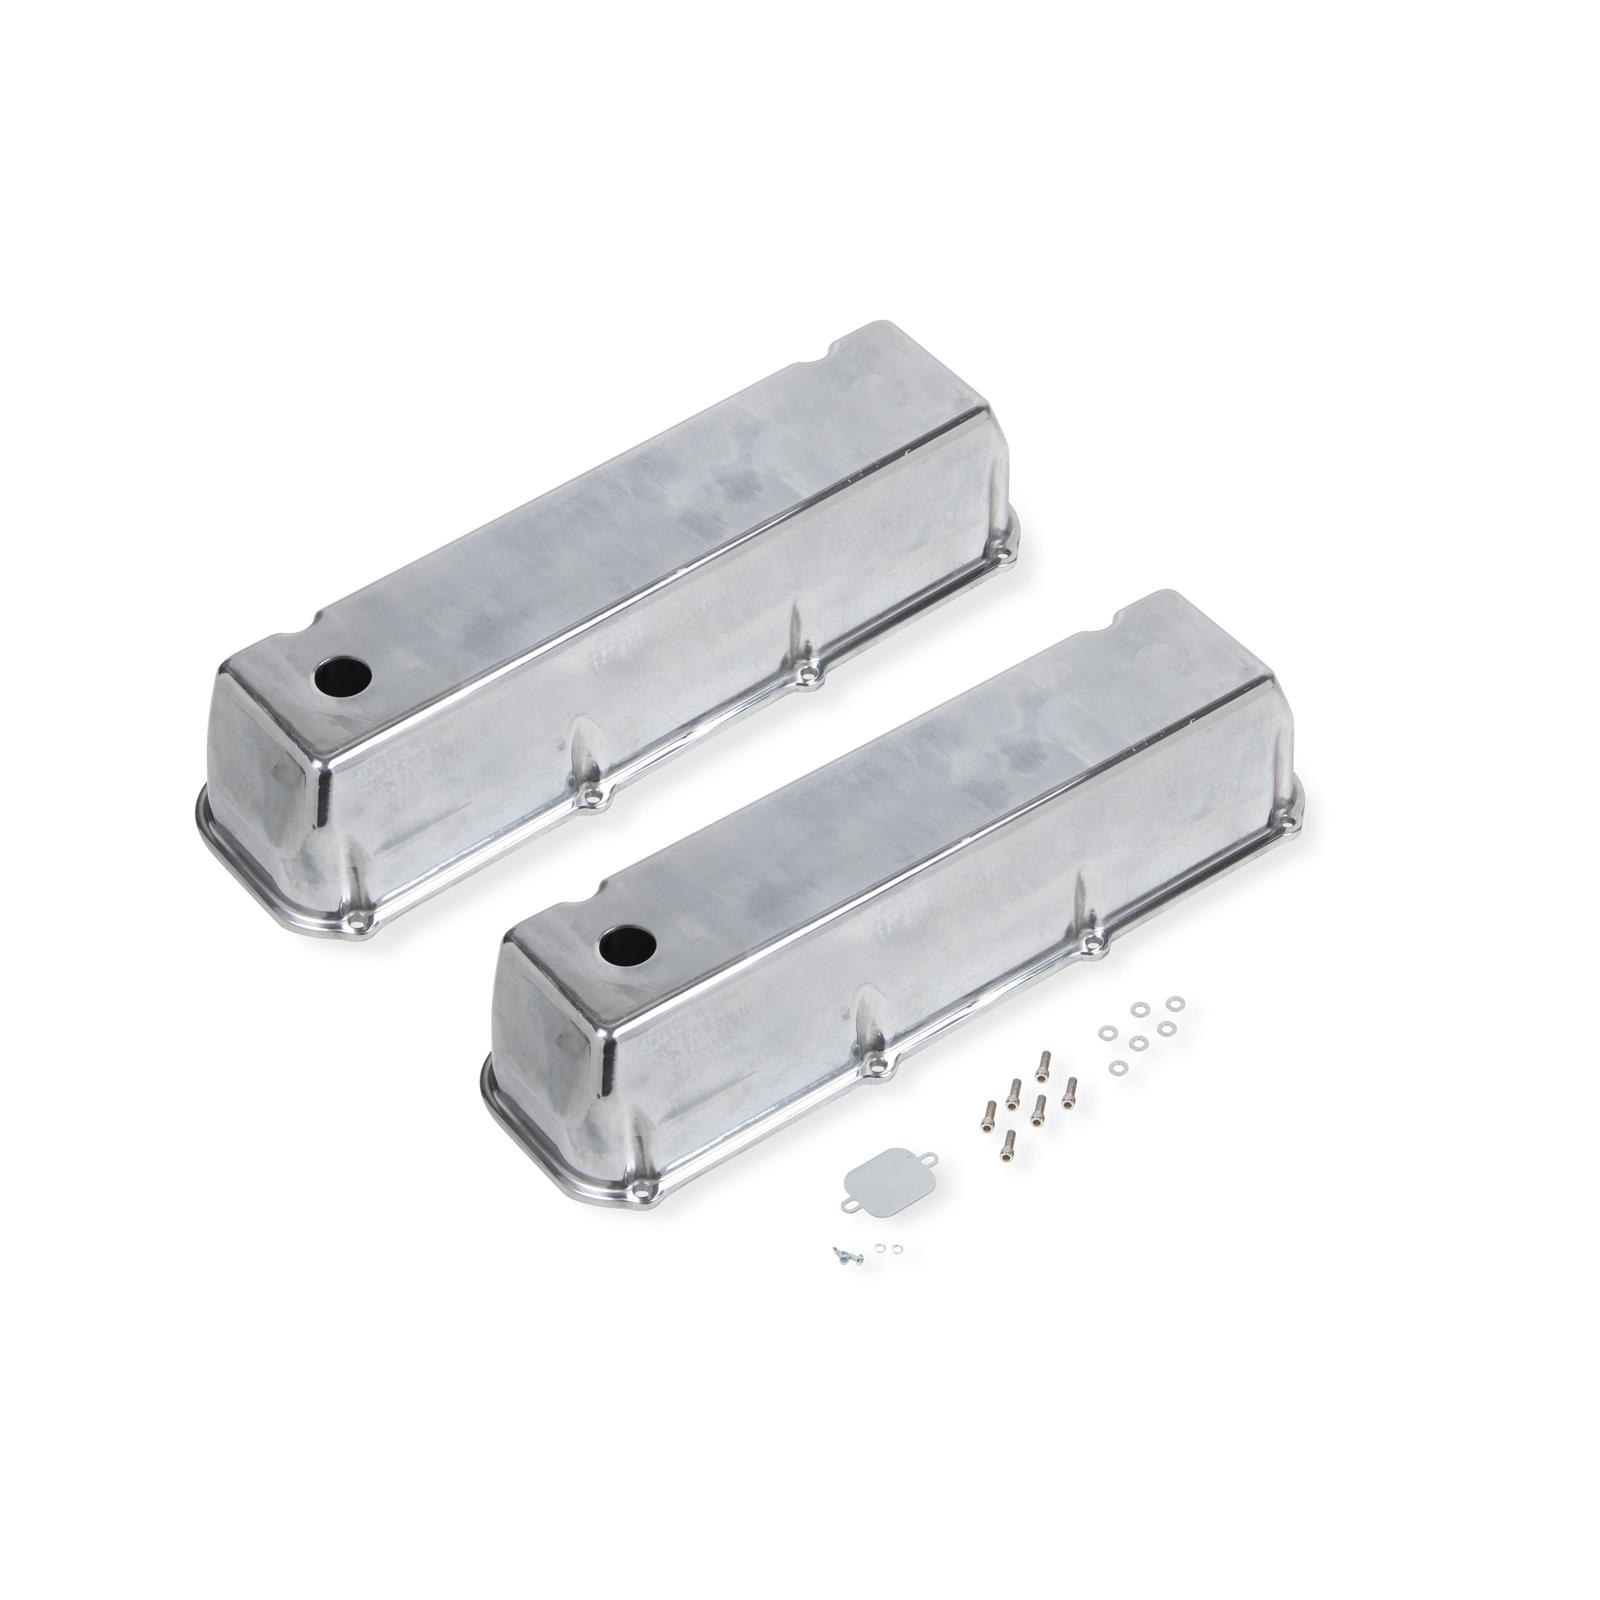 Lincoln//Merc 429-460 Spectre 5264 Chrome Valve Covers Ford 428-460